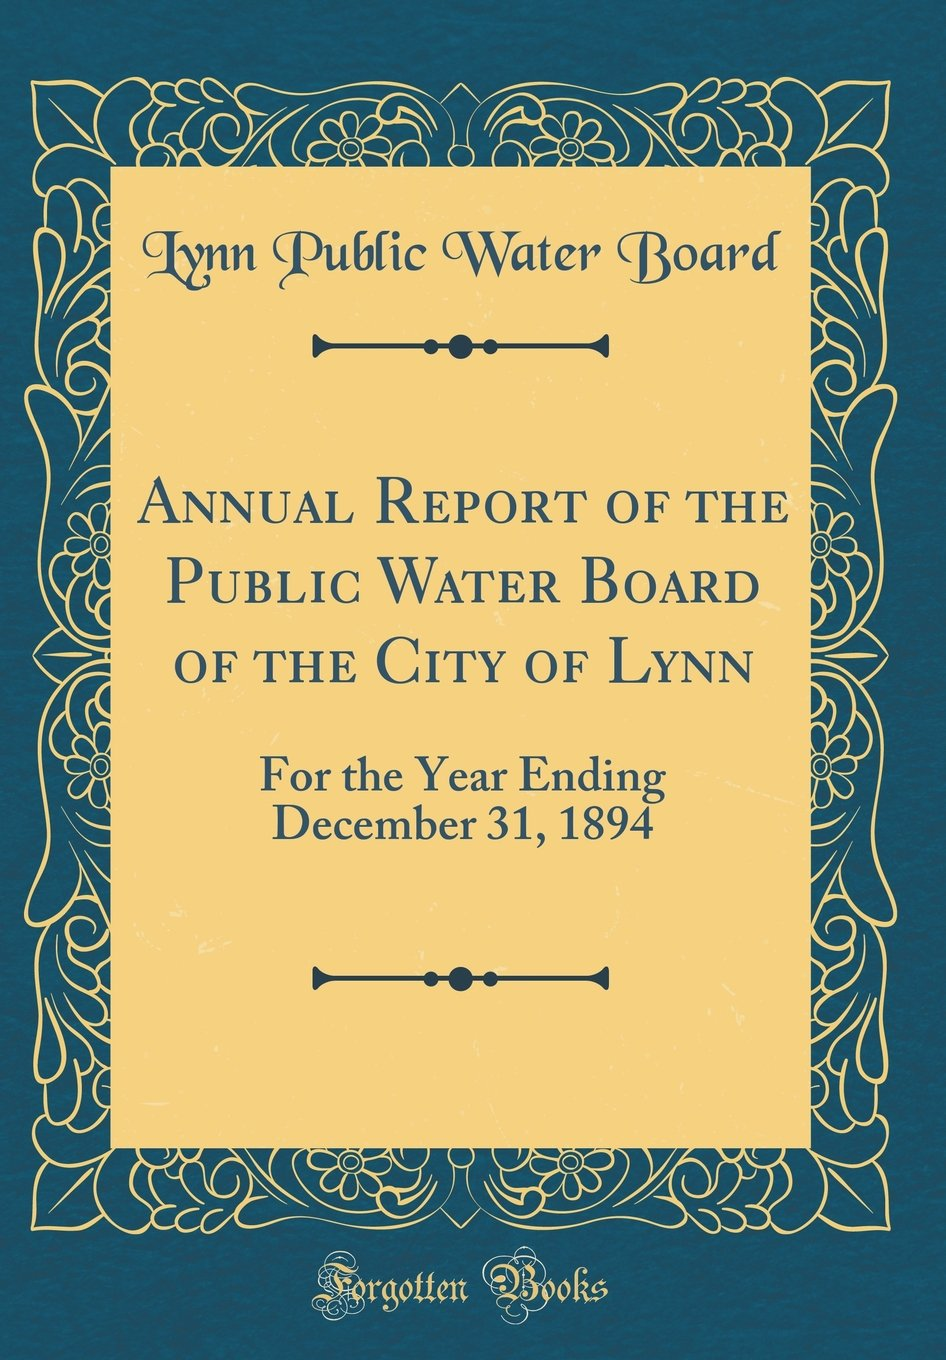 Annual Report of the Public Water Board of the City of Lynn: For the Year Ending December 31, 1894 (Classic Reprint) ebook